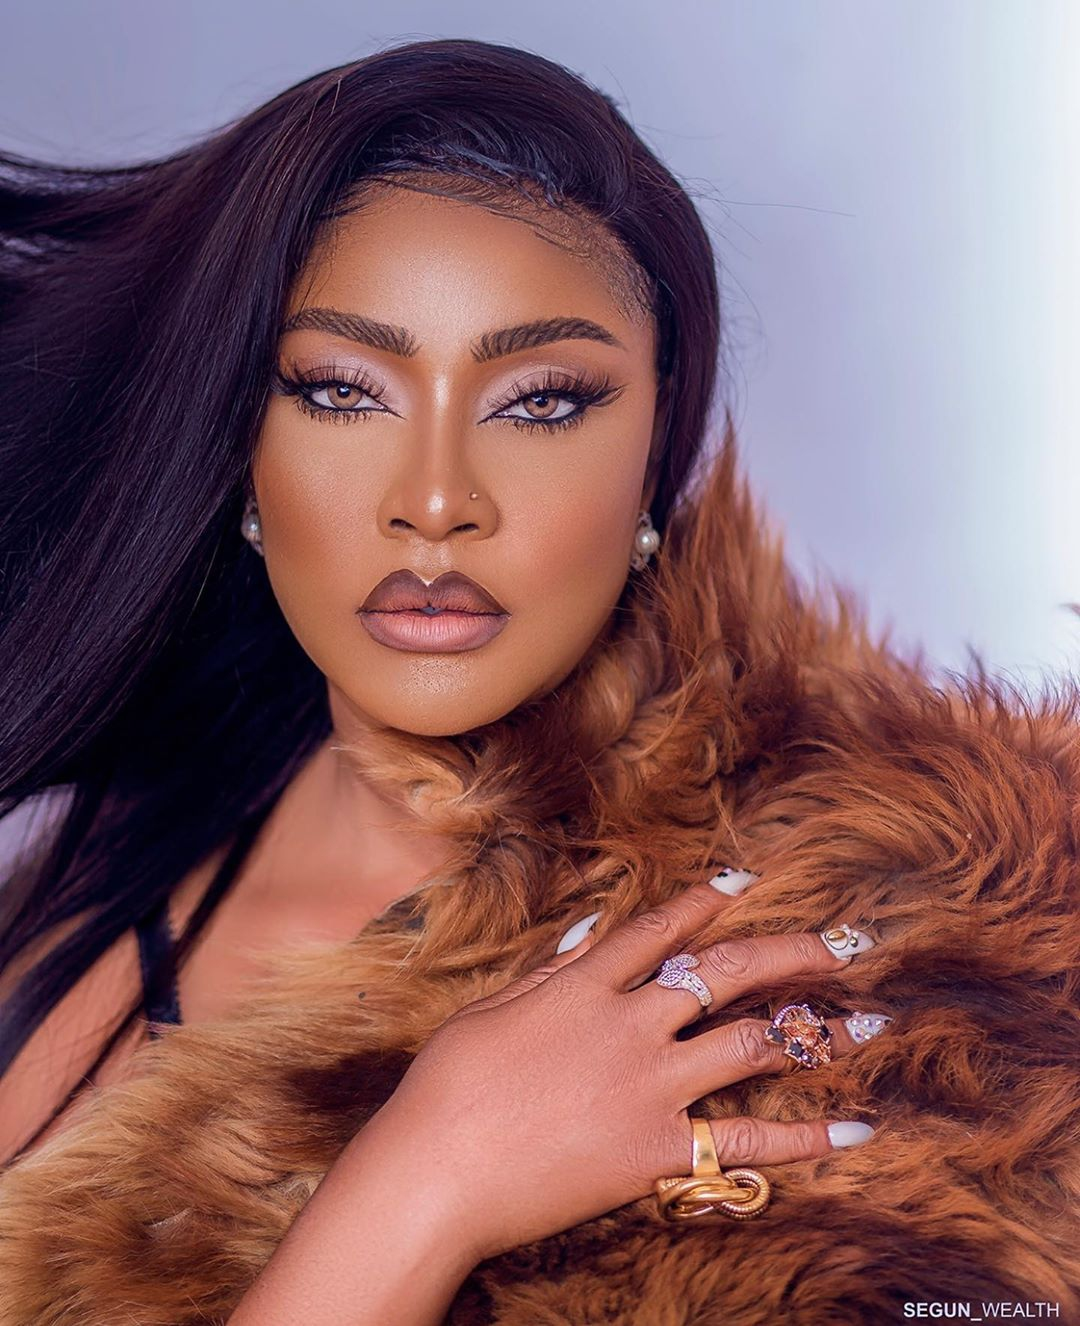 Angela Okorie is Thankful after Surviving a Robbery Attack